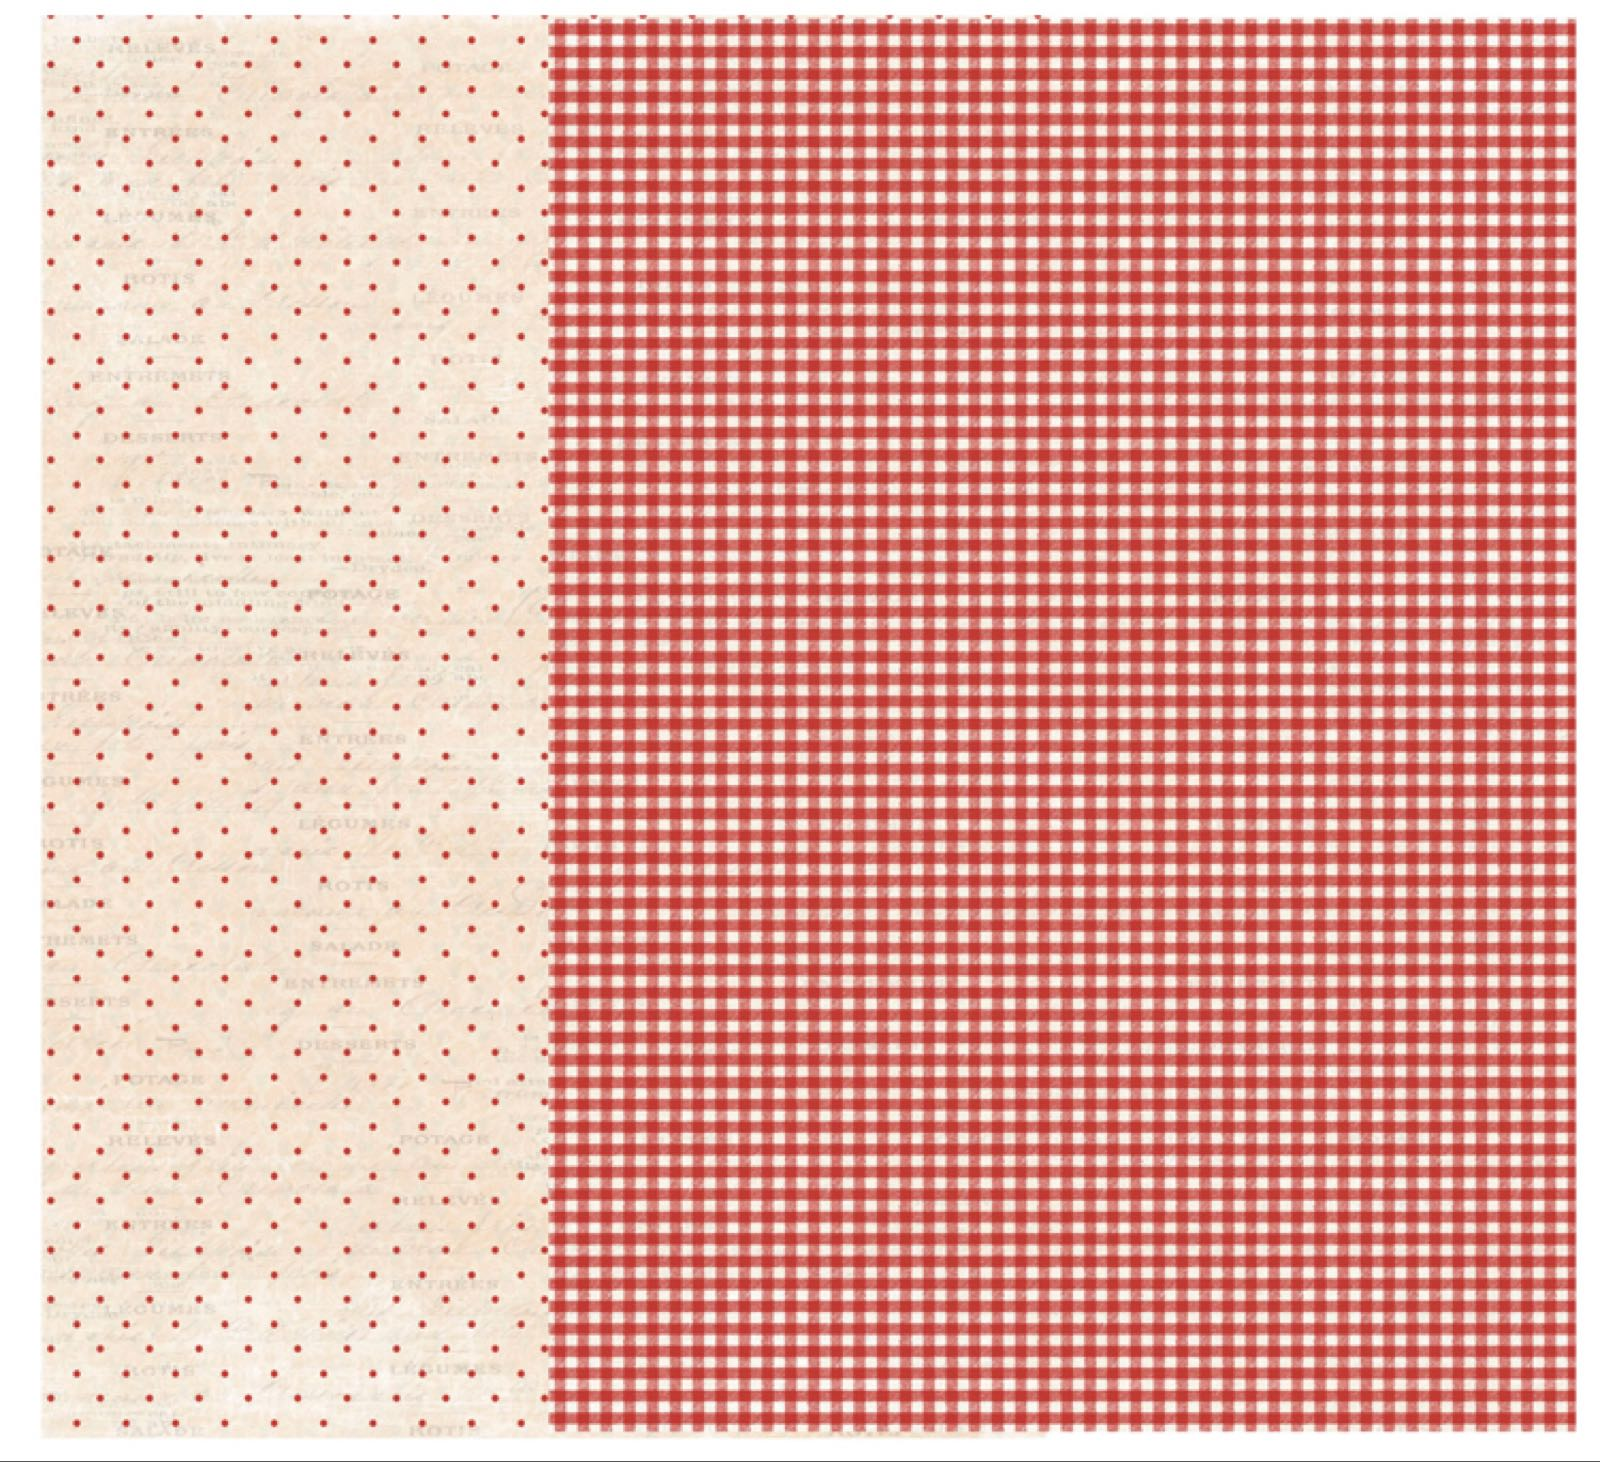 Reprint A4, Fruits & veggies collection Red checkered , RPA4013